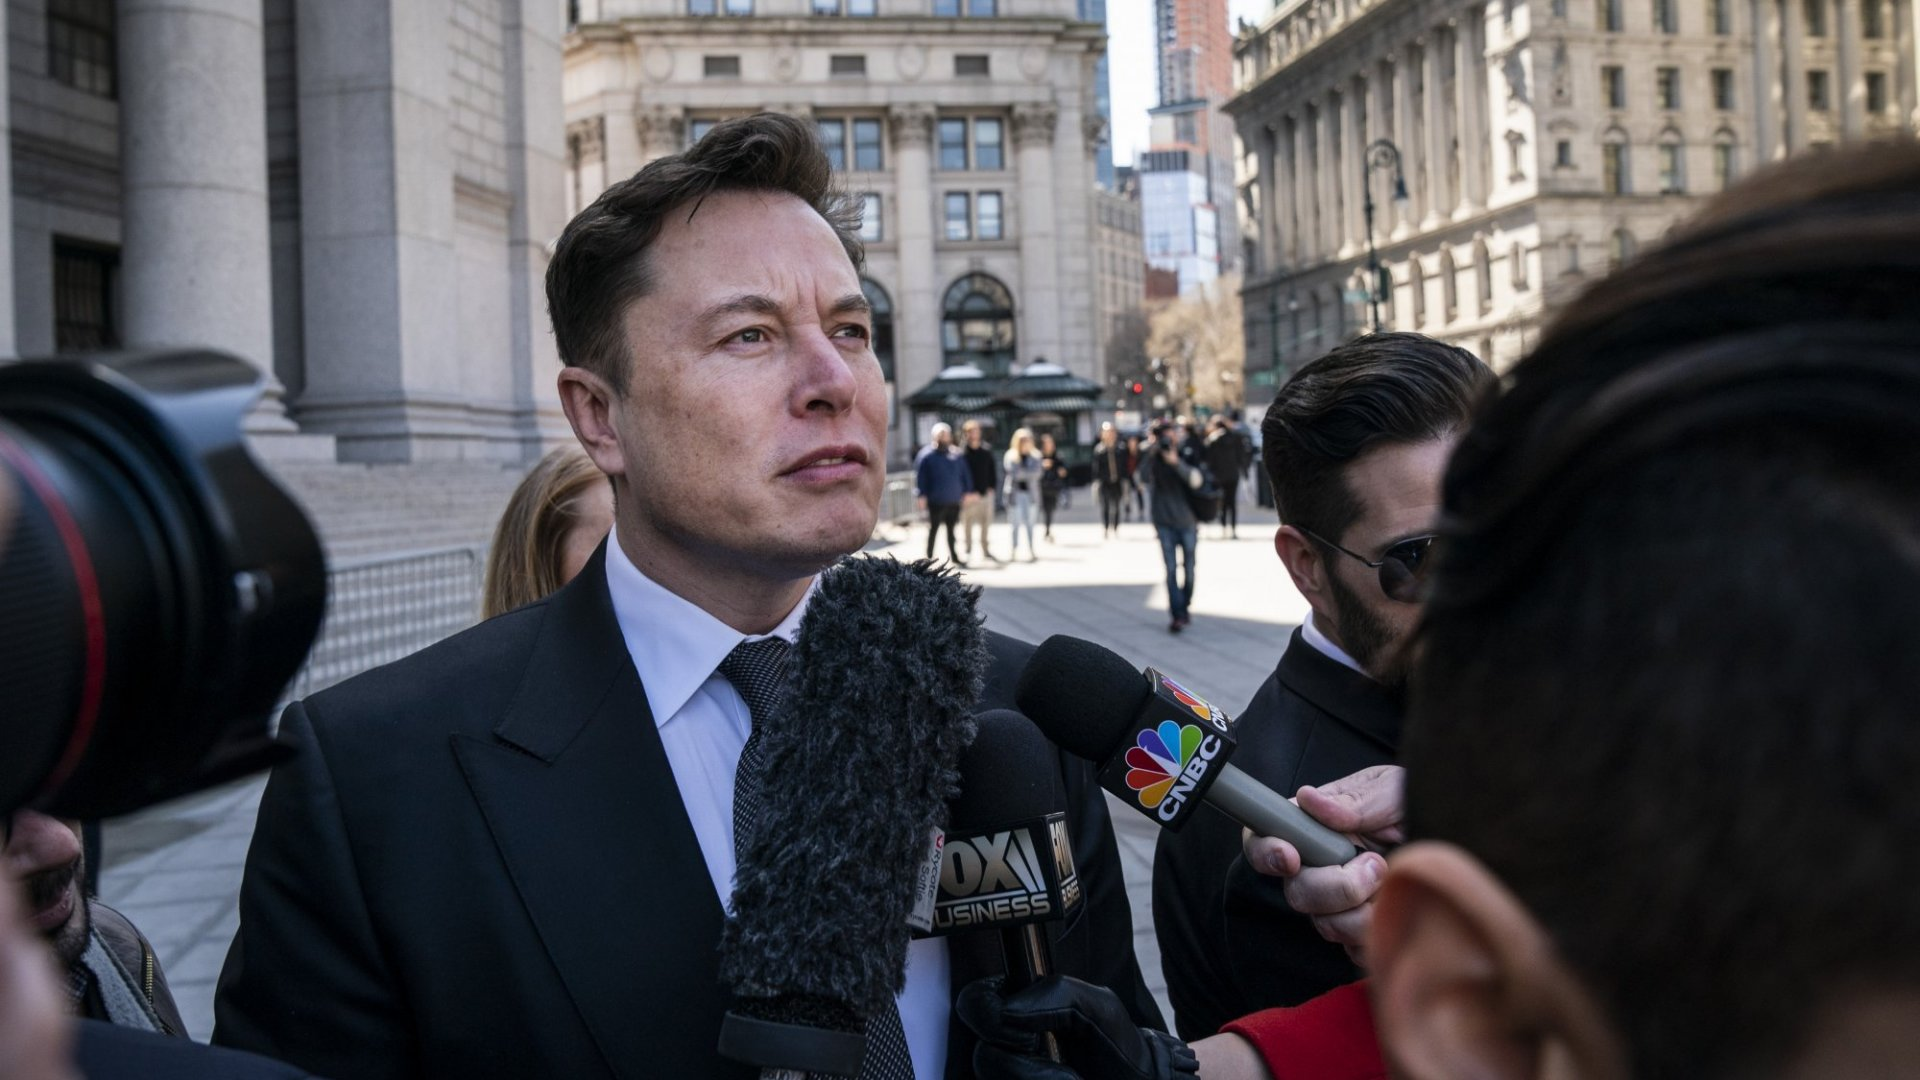 Elon Musk's Tweeting Comes Under Fire From Investor